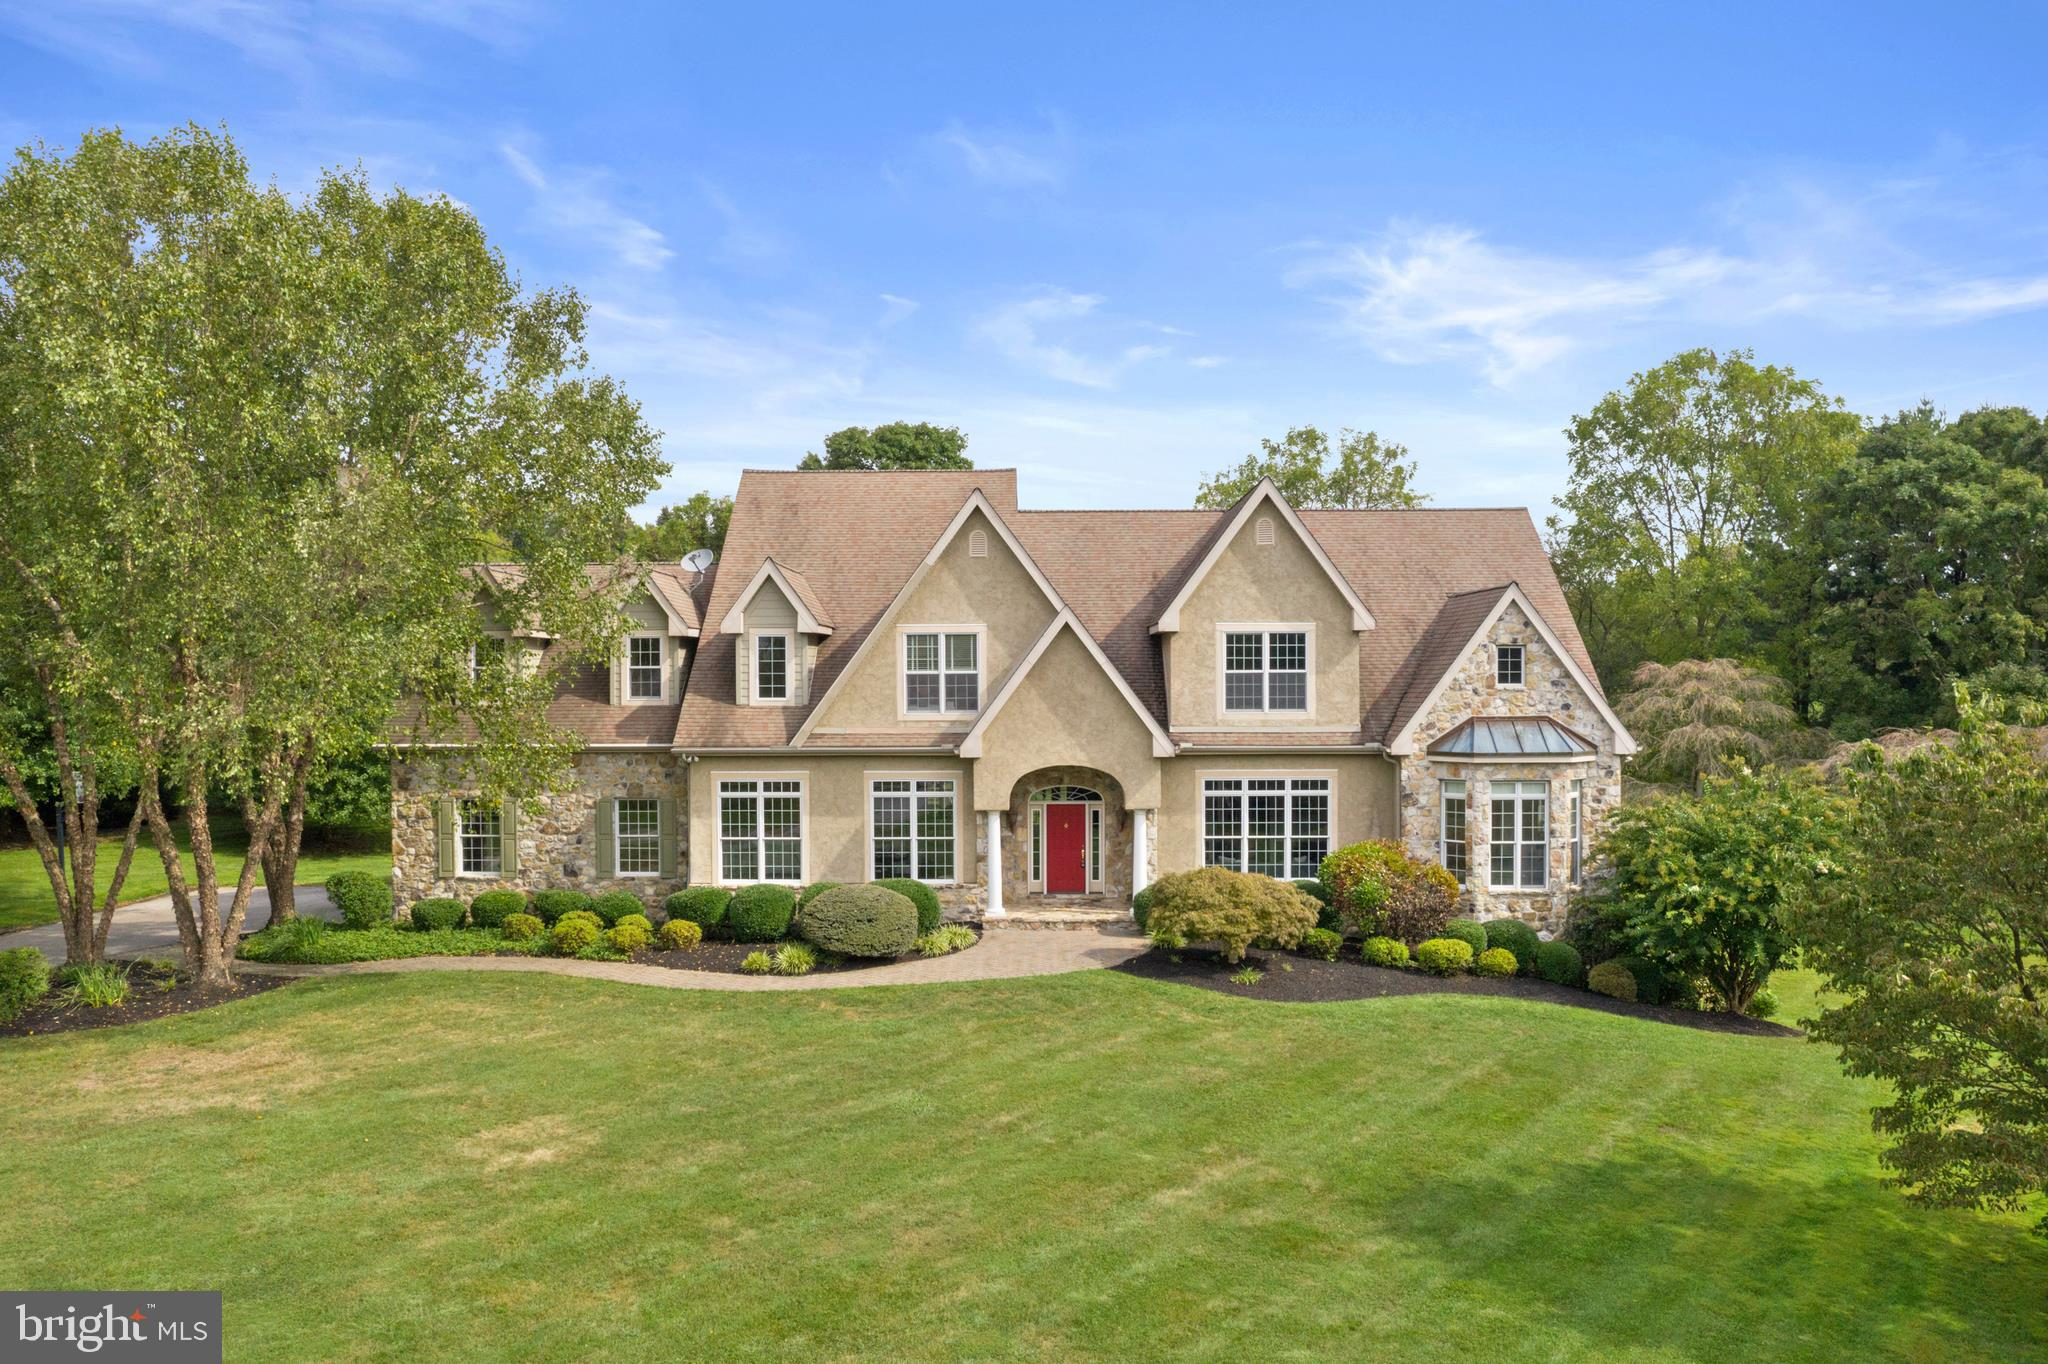 381 RING ROAD, CHADDS FORD, PA 19317